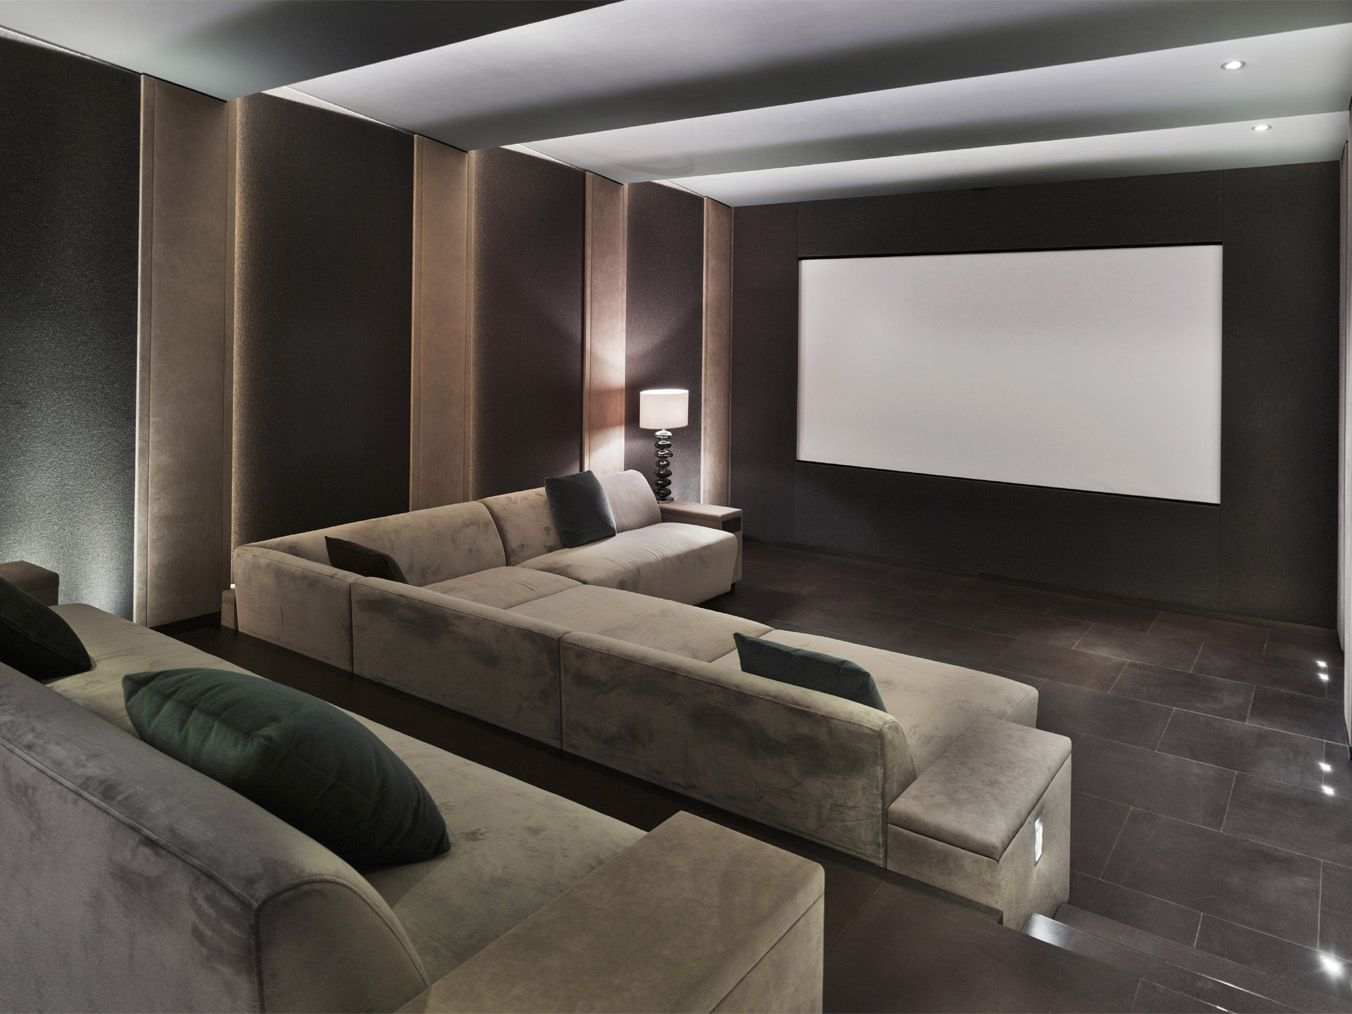 15 Tips For Building The Perfect Home Theater Room